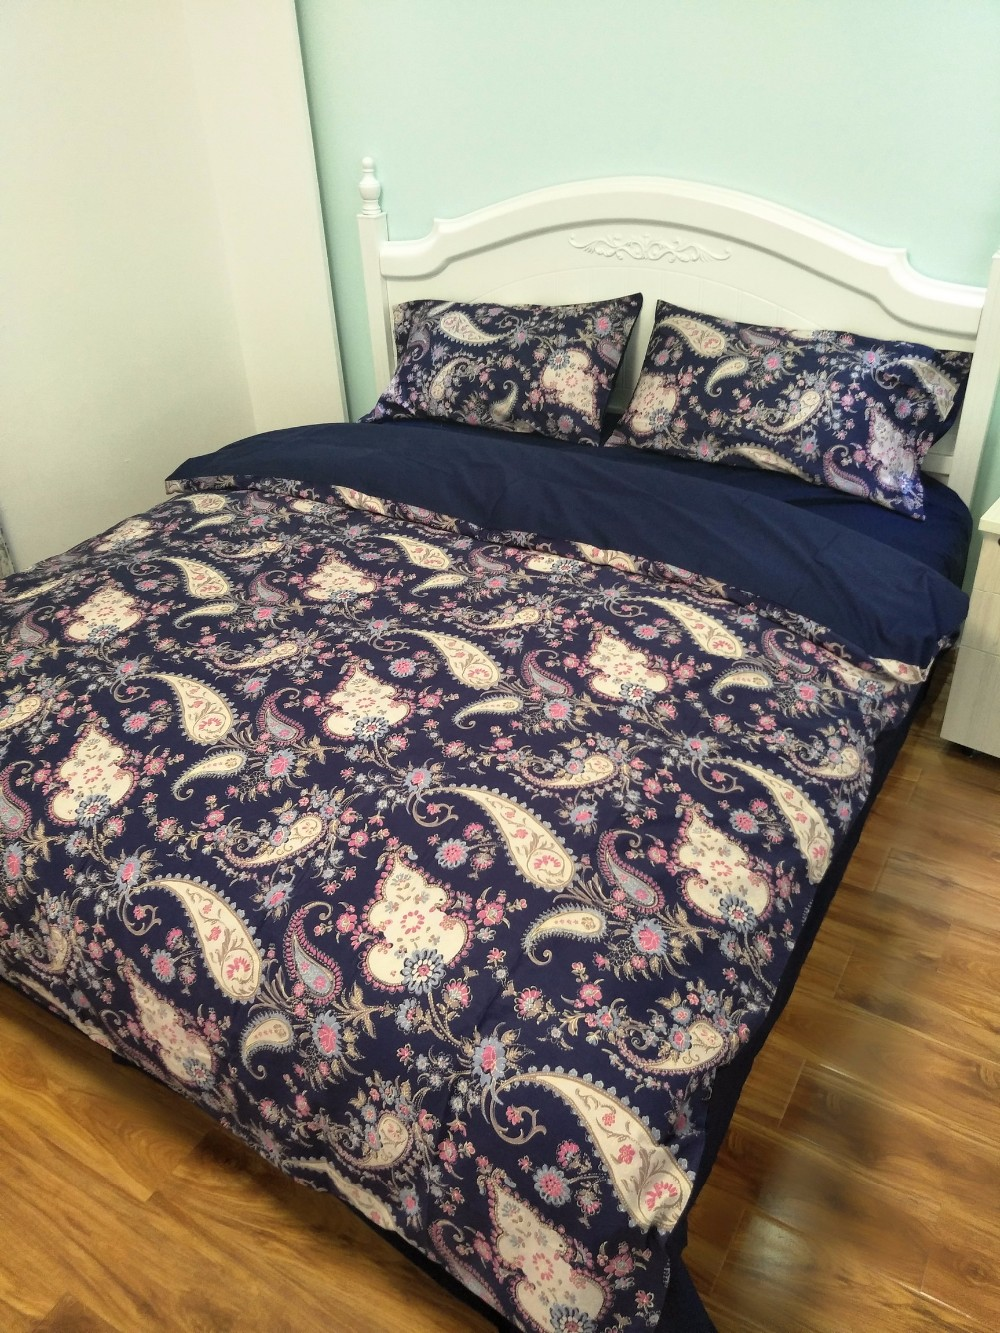 Egyptian cotton bed sets 100 egyptian cotton bedding for Best egyptian cotton bed sheets